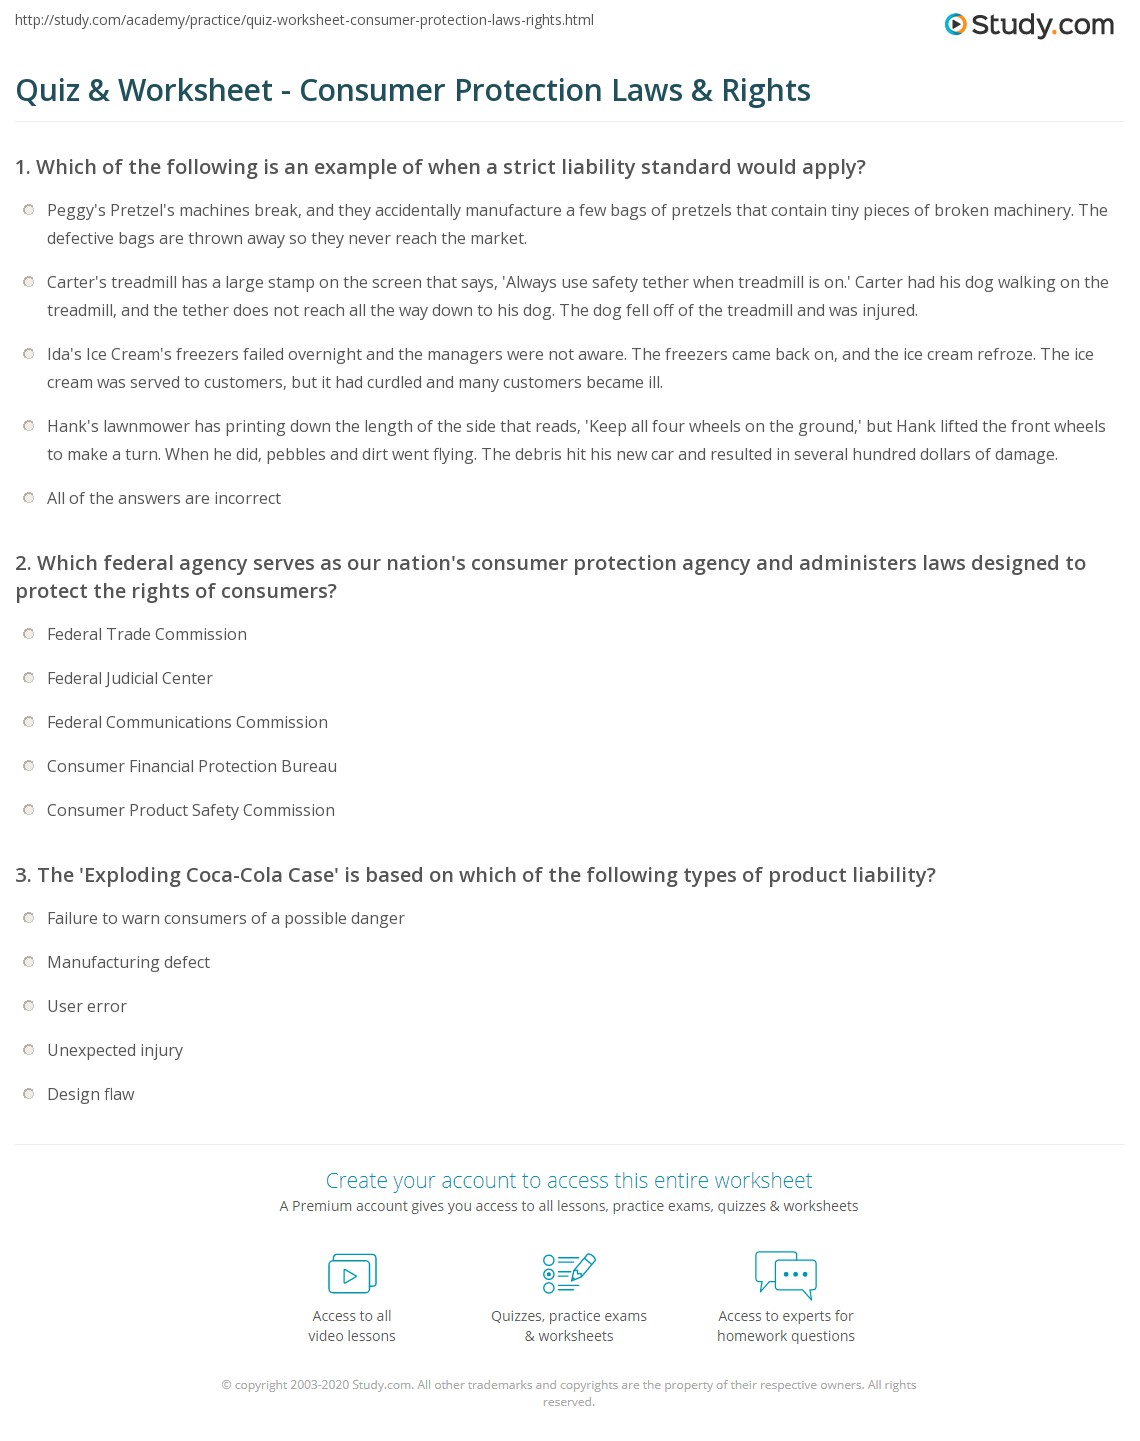 Quiz & Worksheet - Consumer Protection Laws & Rights   Study.com